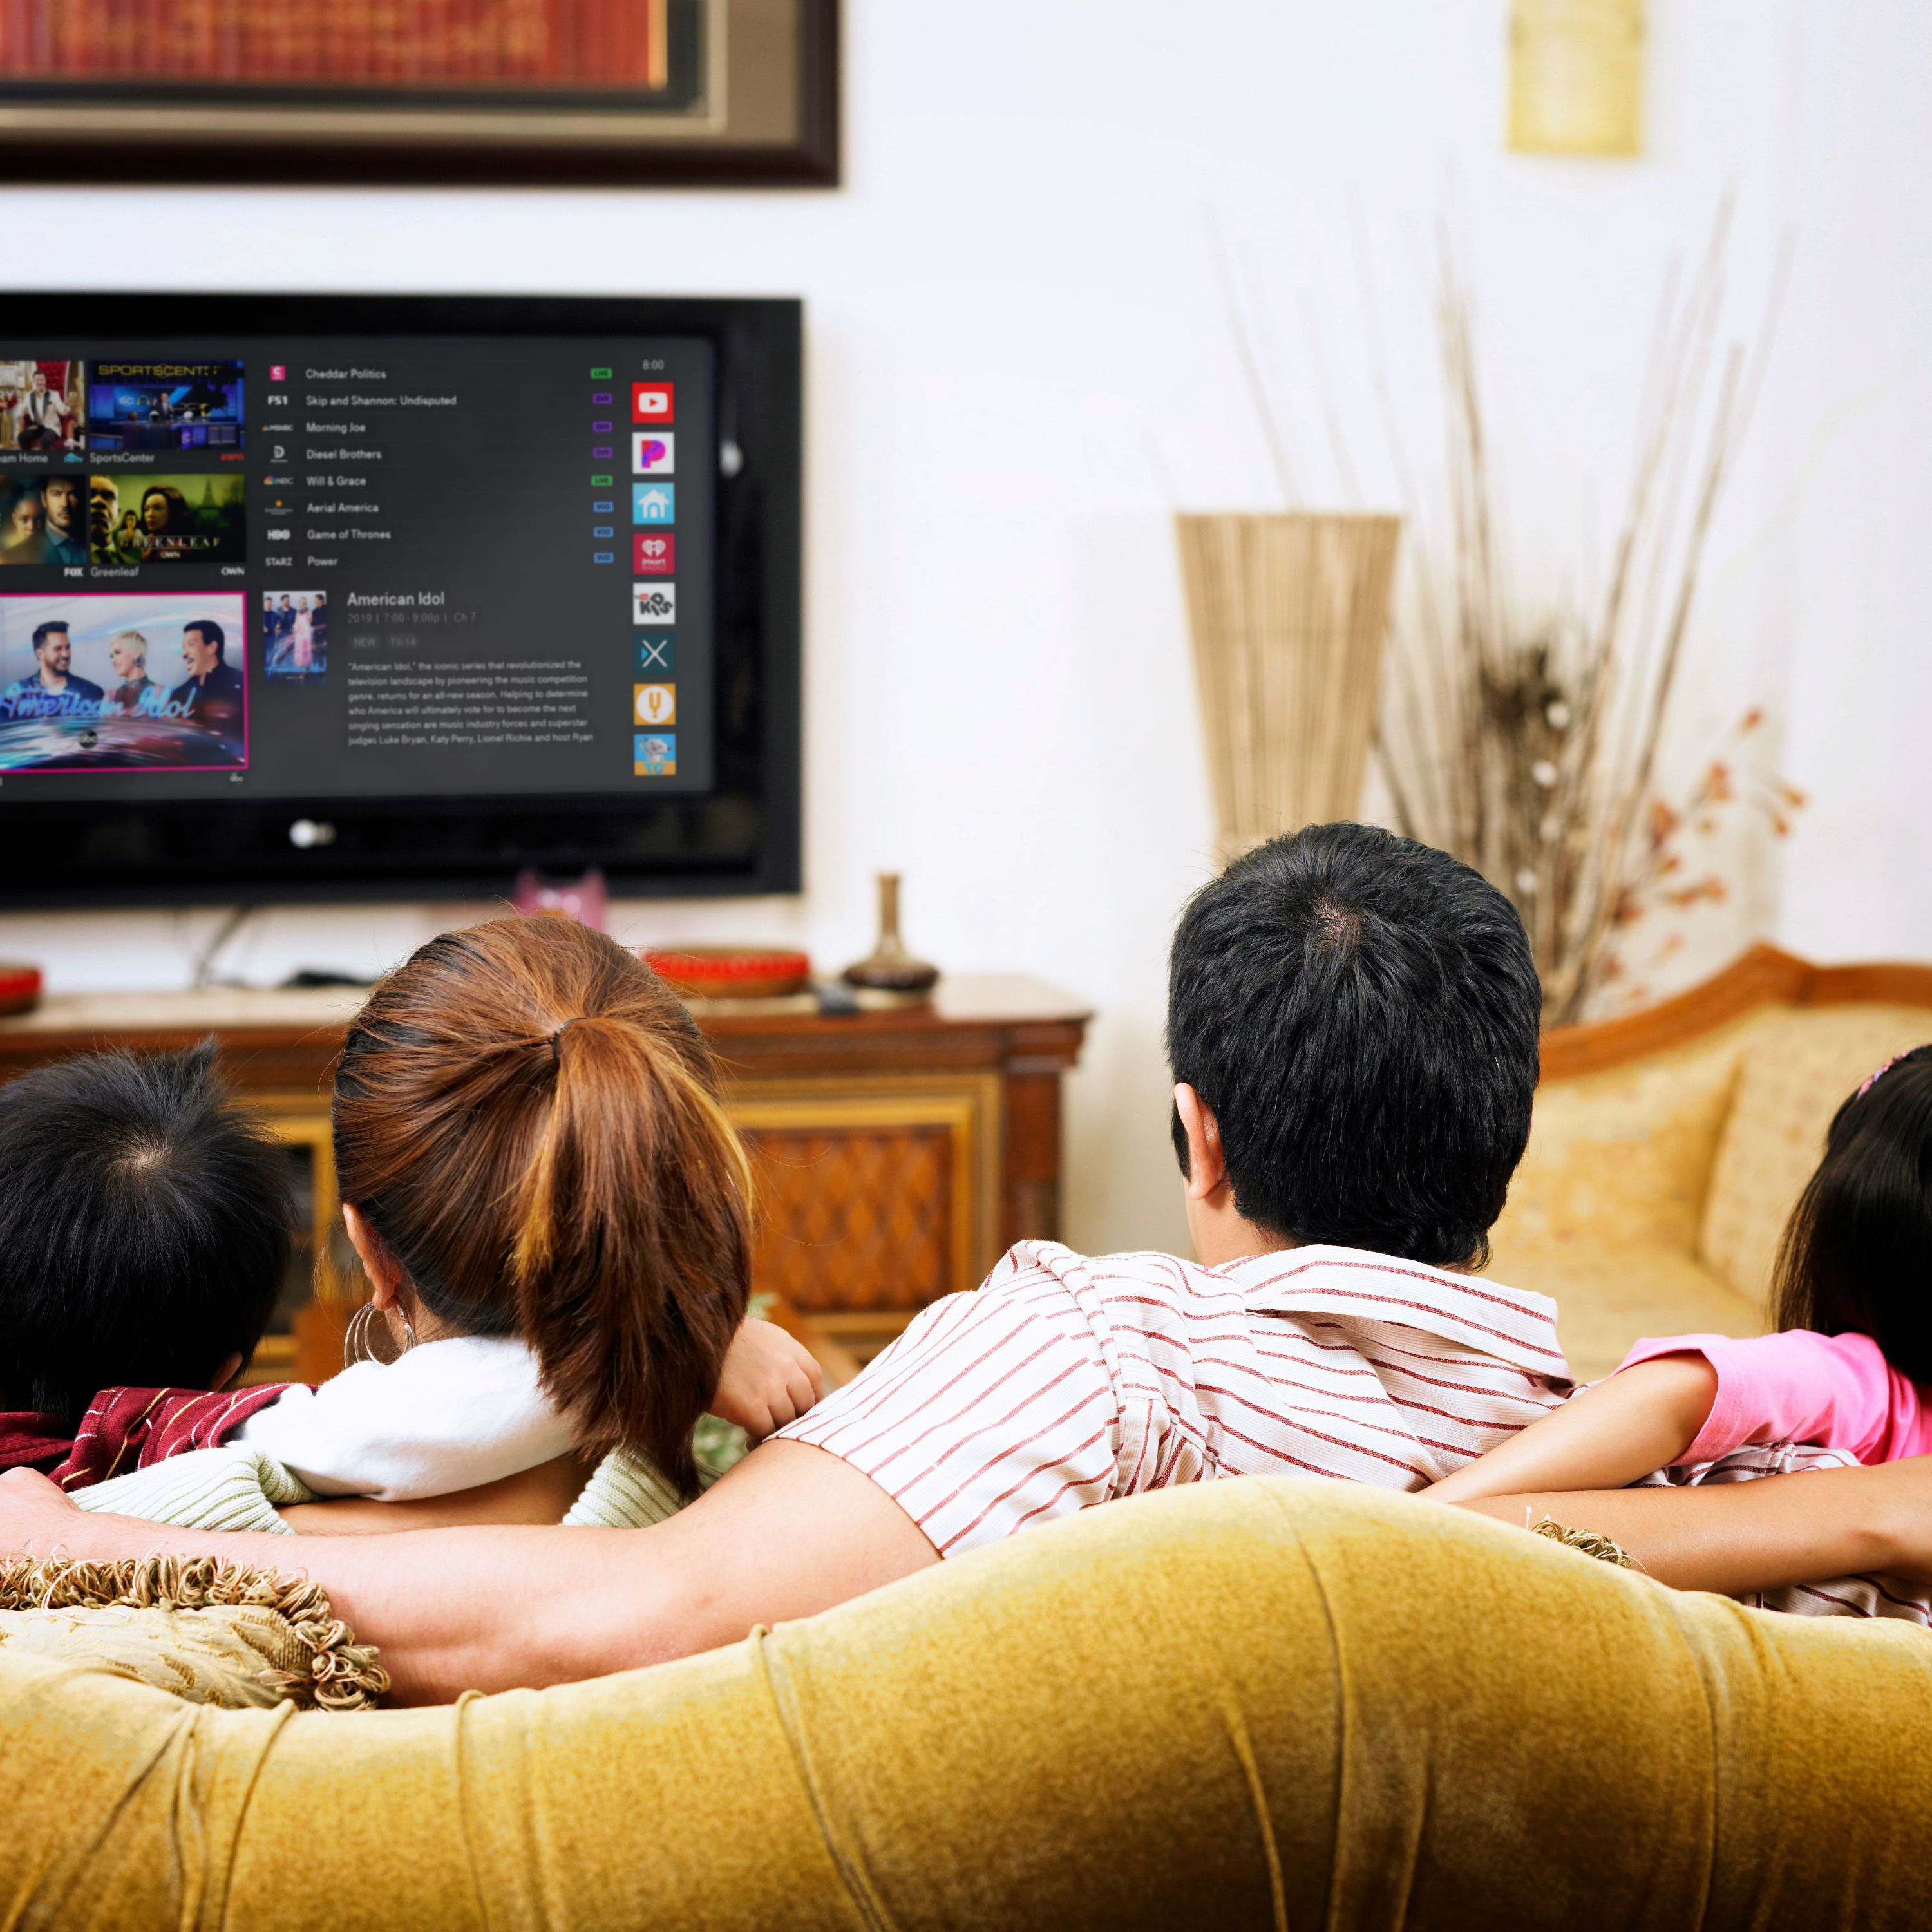 How to Use T-Mobile's TV Streaming Service